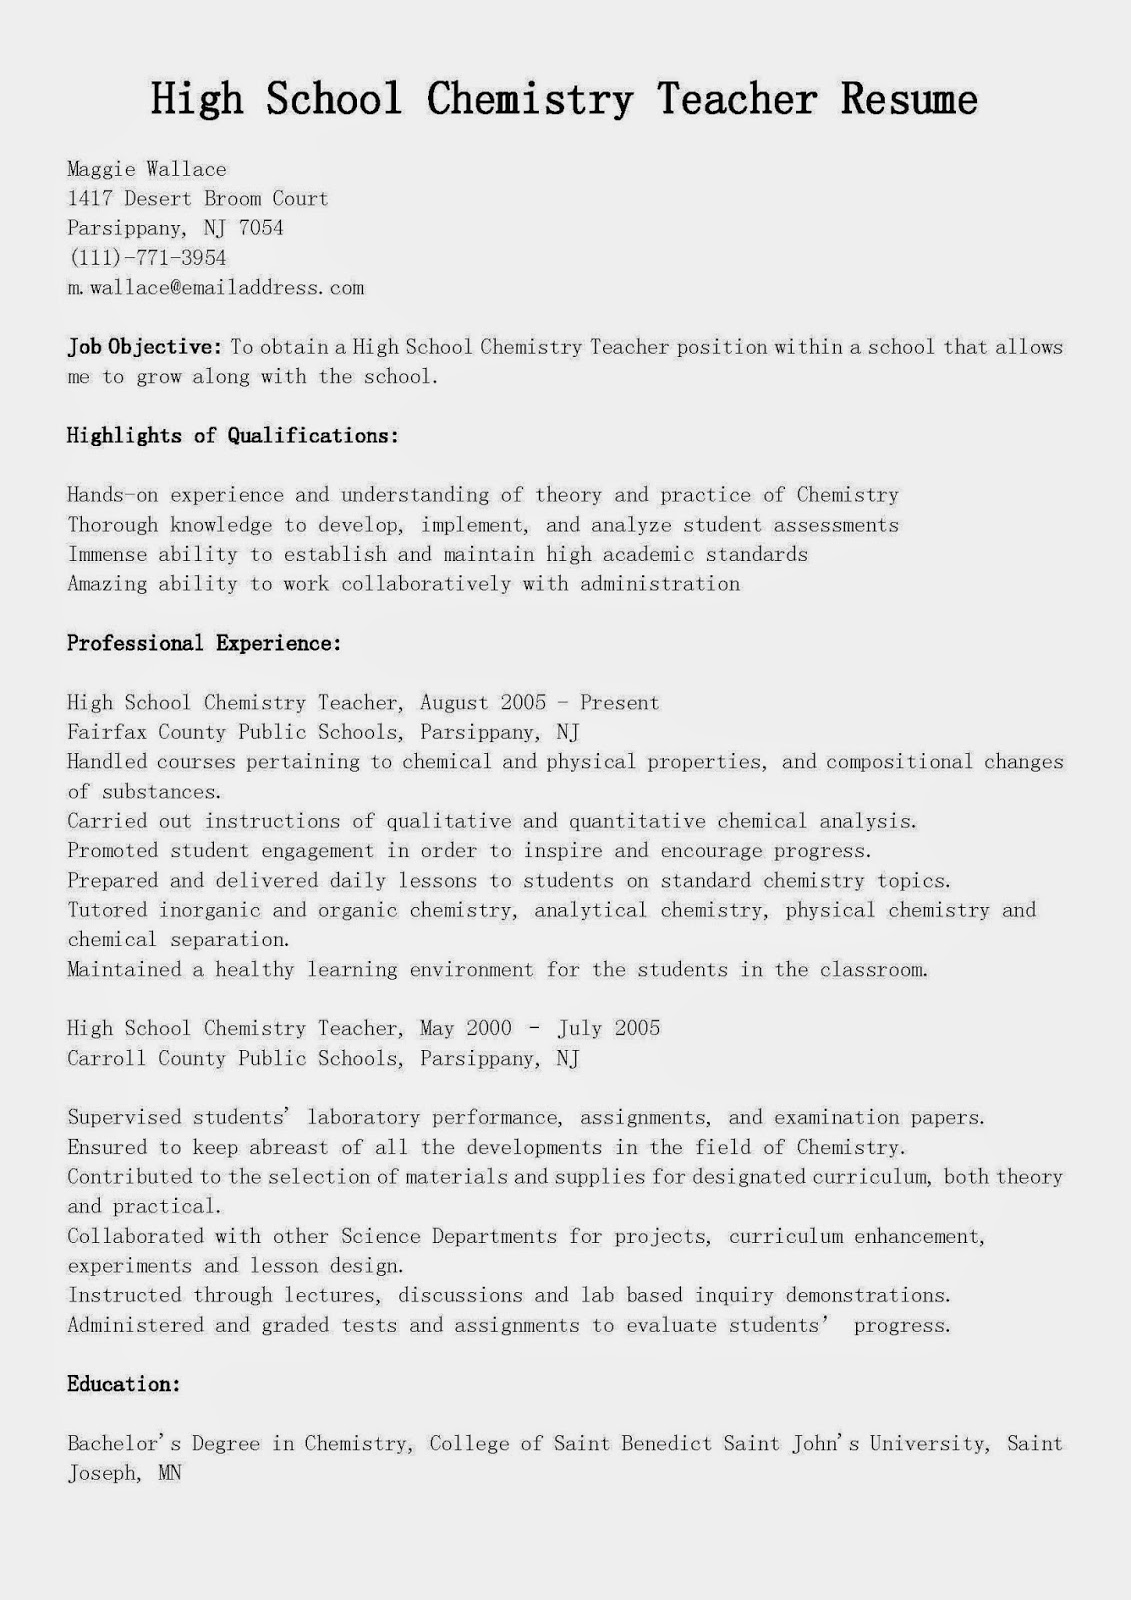 resume samples  high school chemistry teacher resume sample